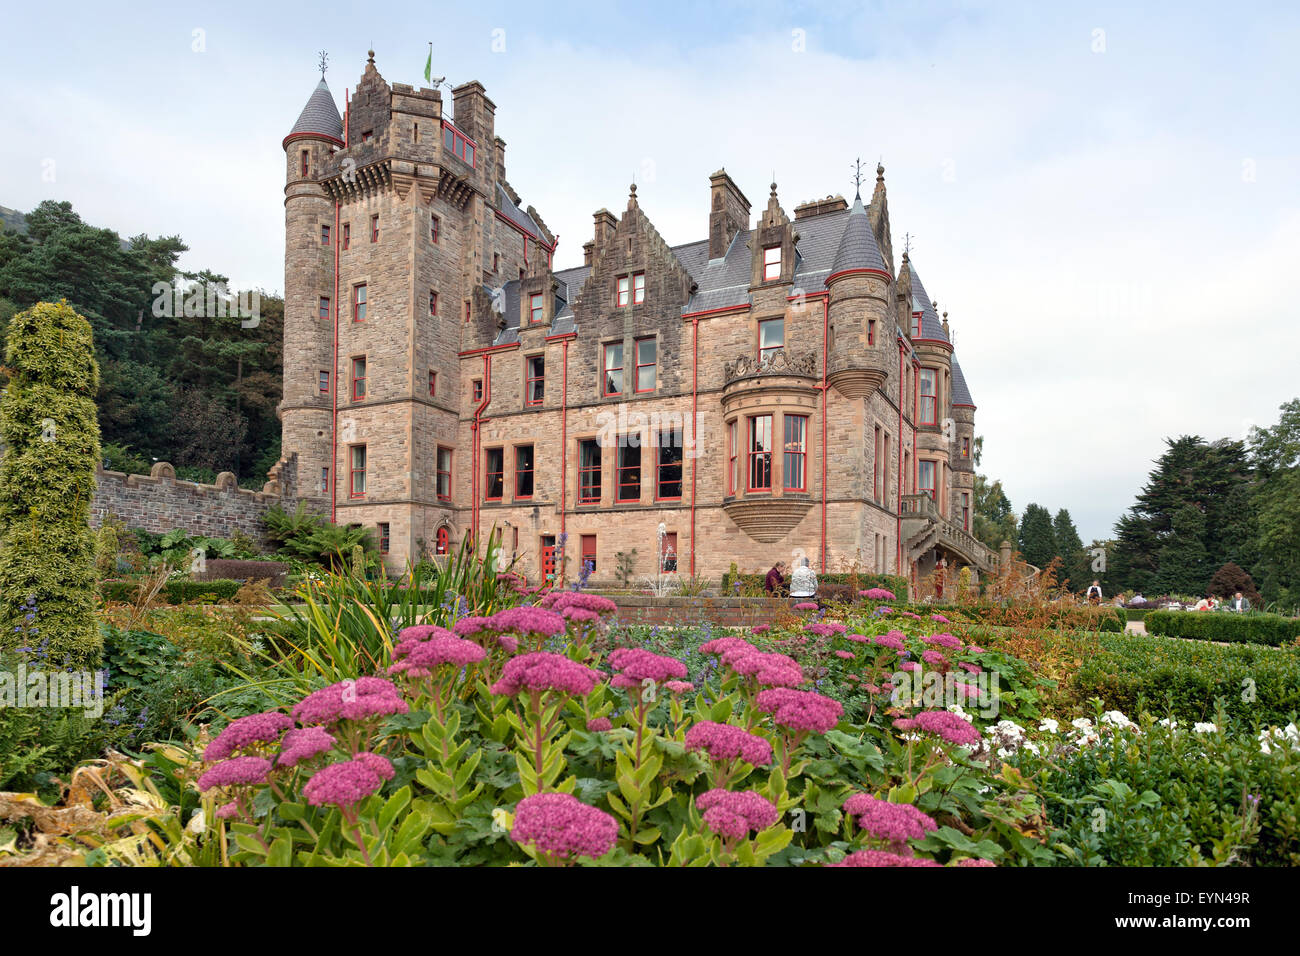 Belfast castle and its gardens - Stock Image